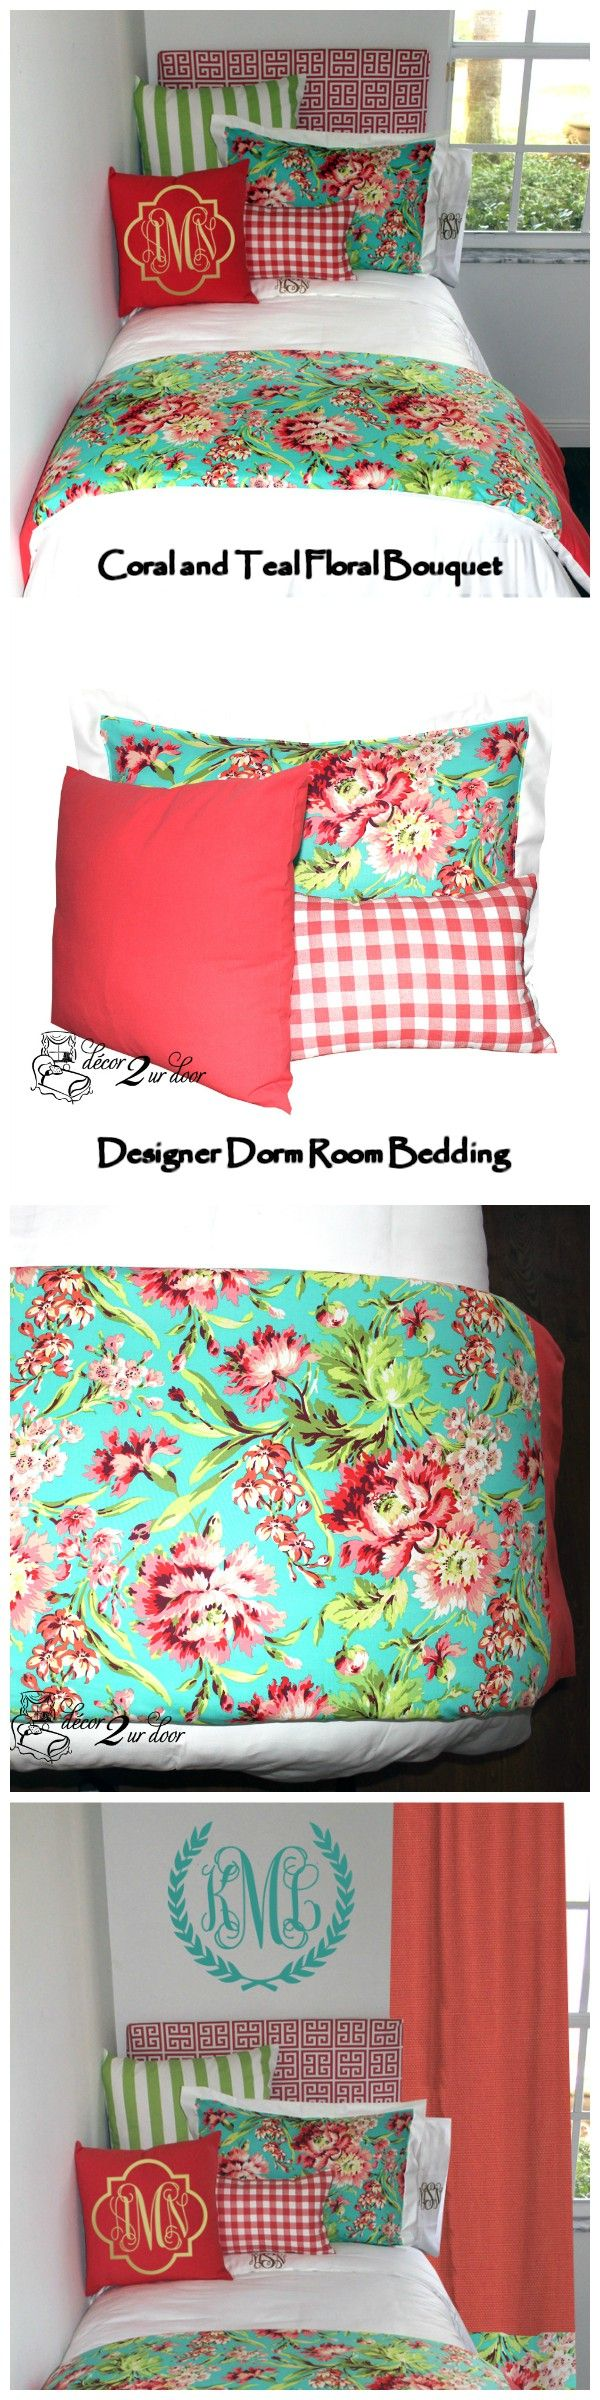 Coral floral dorm room. Coral and Teal dorm bedding. Decorate a dorm room. Dorm room bedding and décor. Dorm room decor trends. College dorm room bedding sets. College dorm room bedding sets. Design your own dorm room bedding. College dorm bedding ideas. Dorm bedding and accessories. Decor 2 Ur door bedding. Decorating a dorm room ideas.